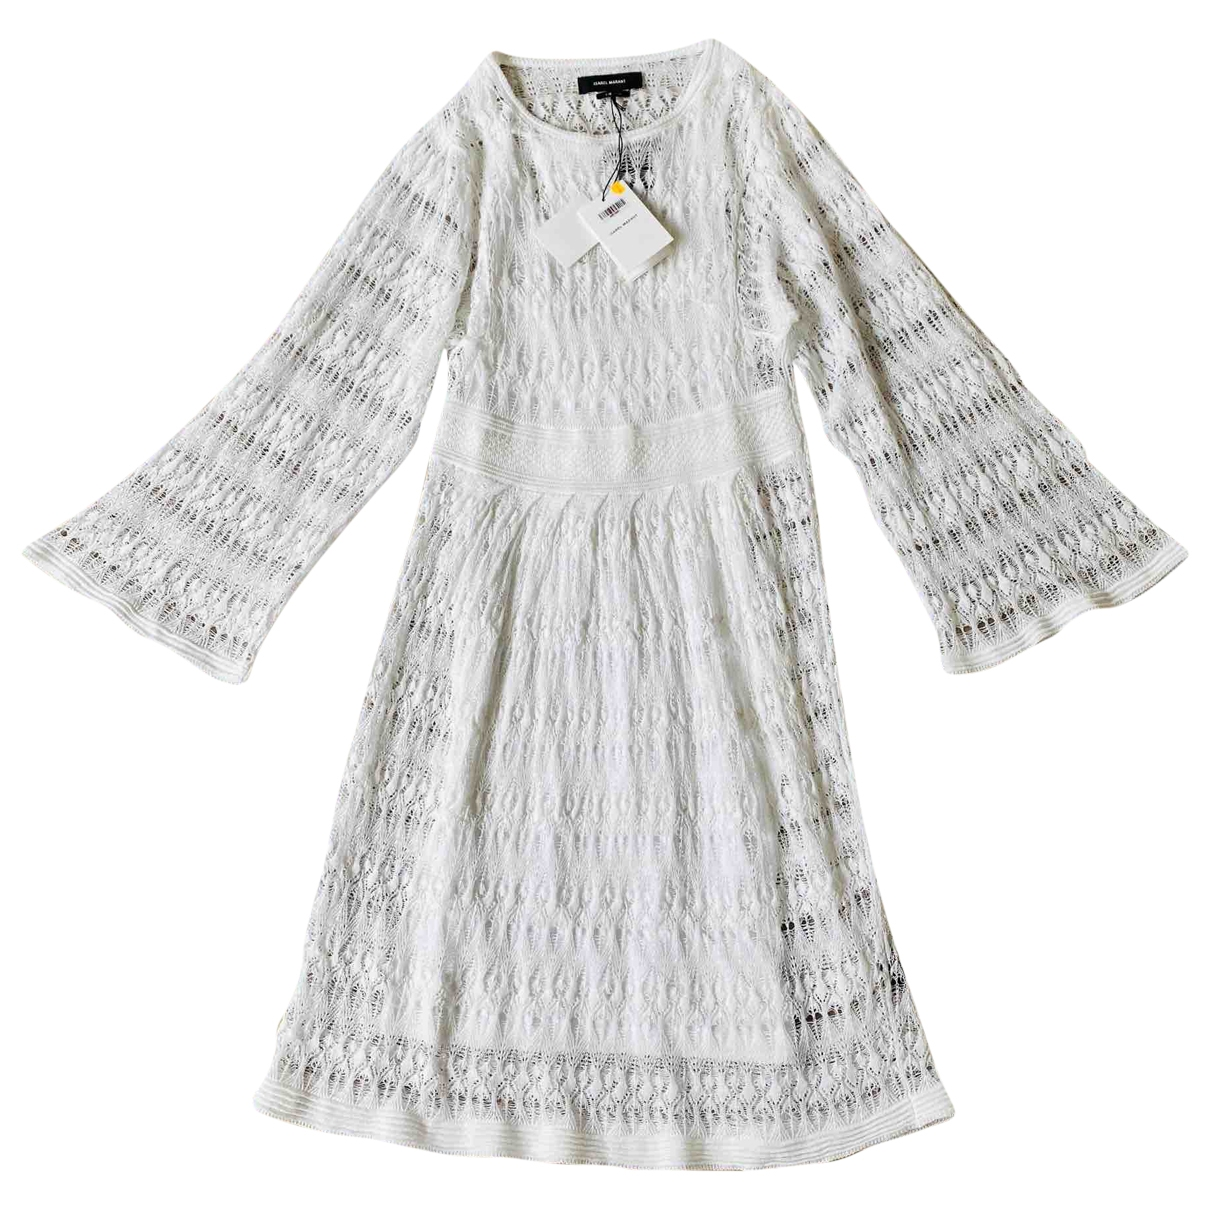 Isabel Marant \N White Linen dress for Women 34 FR